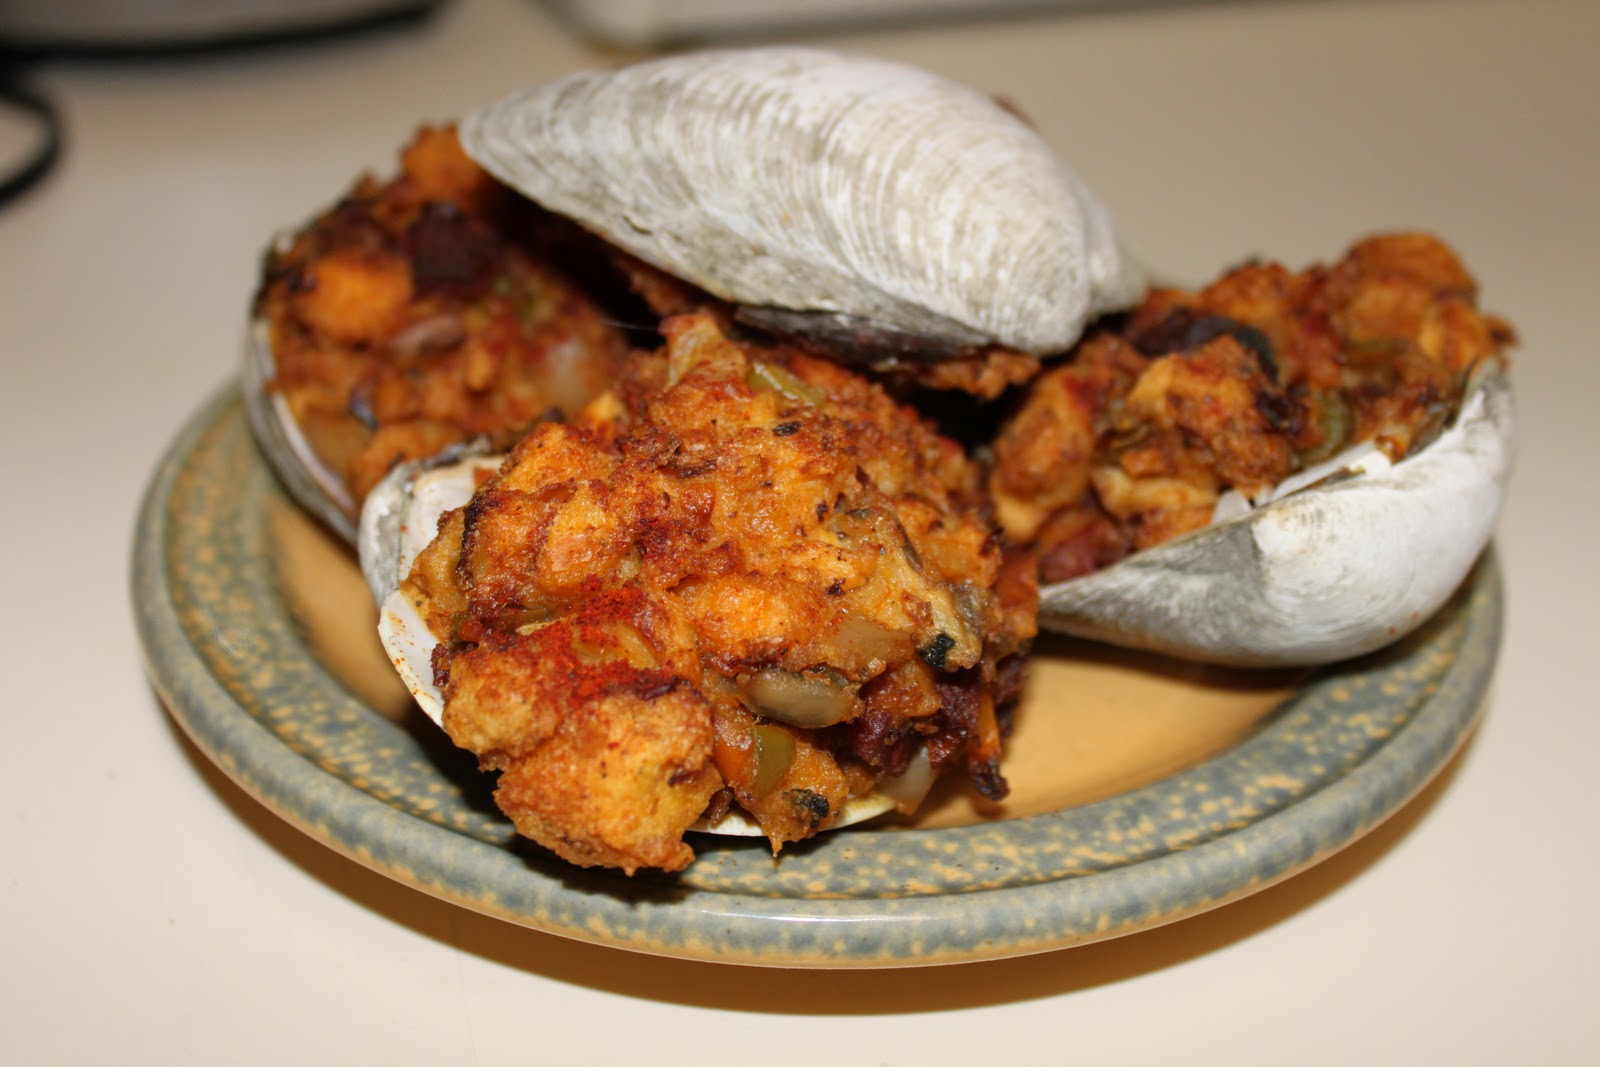 ... Coffee Table Diner: Maryland's Attempt at Portuguese Stuffed Quahogs